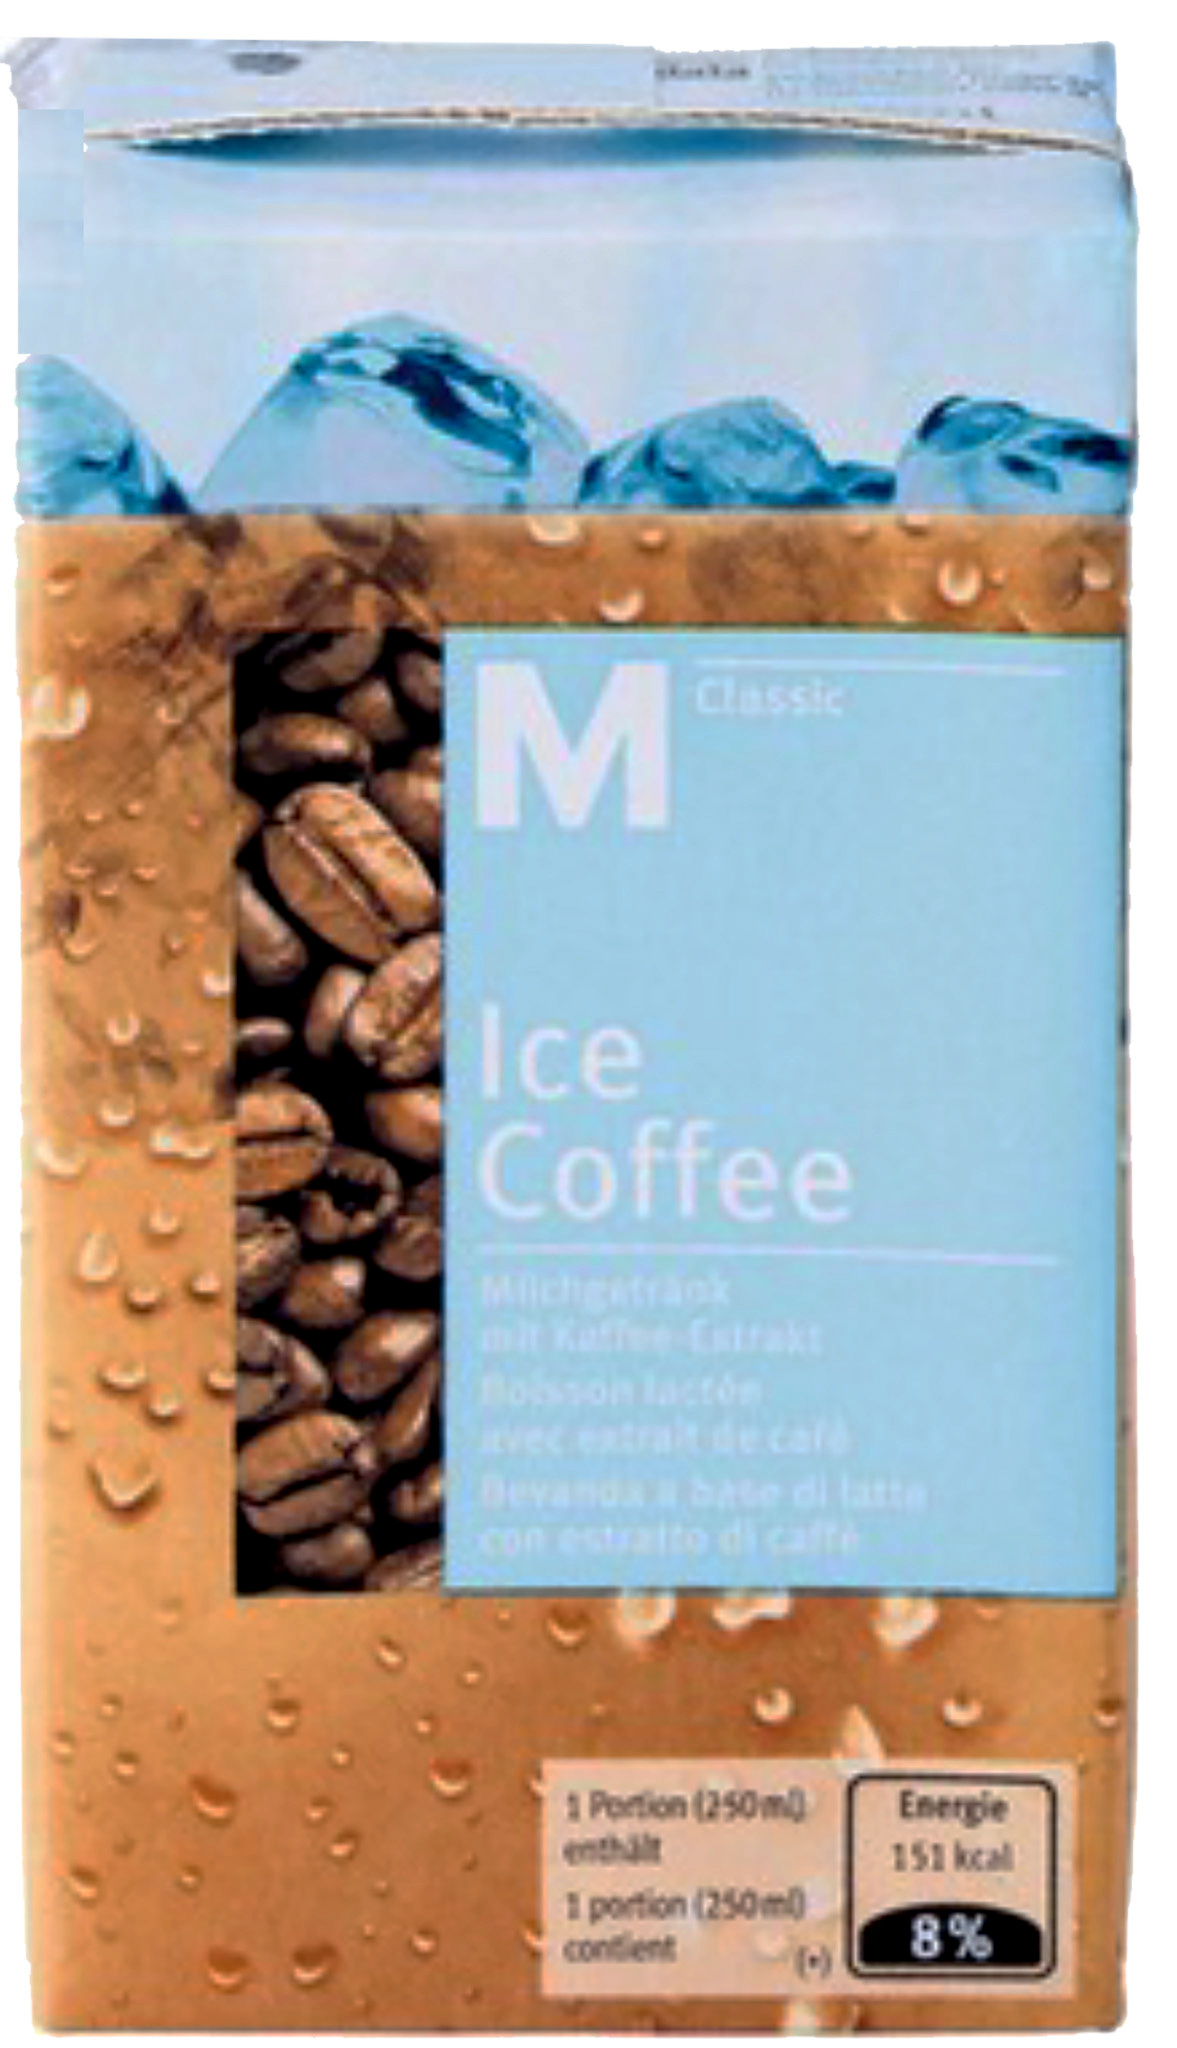 Ice Coffee - Product